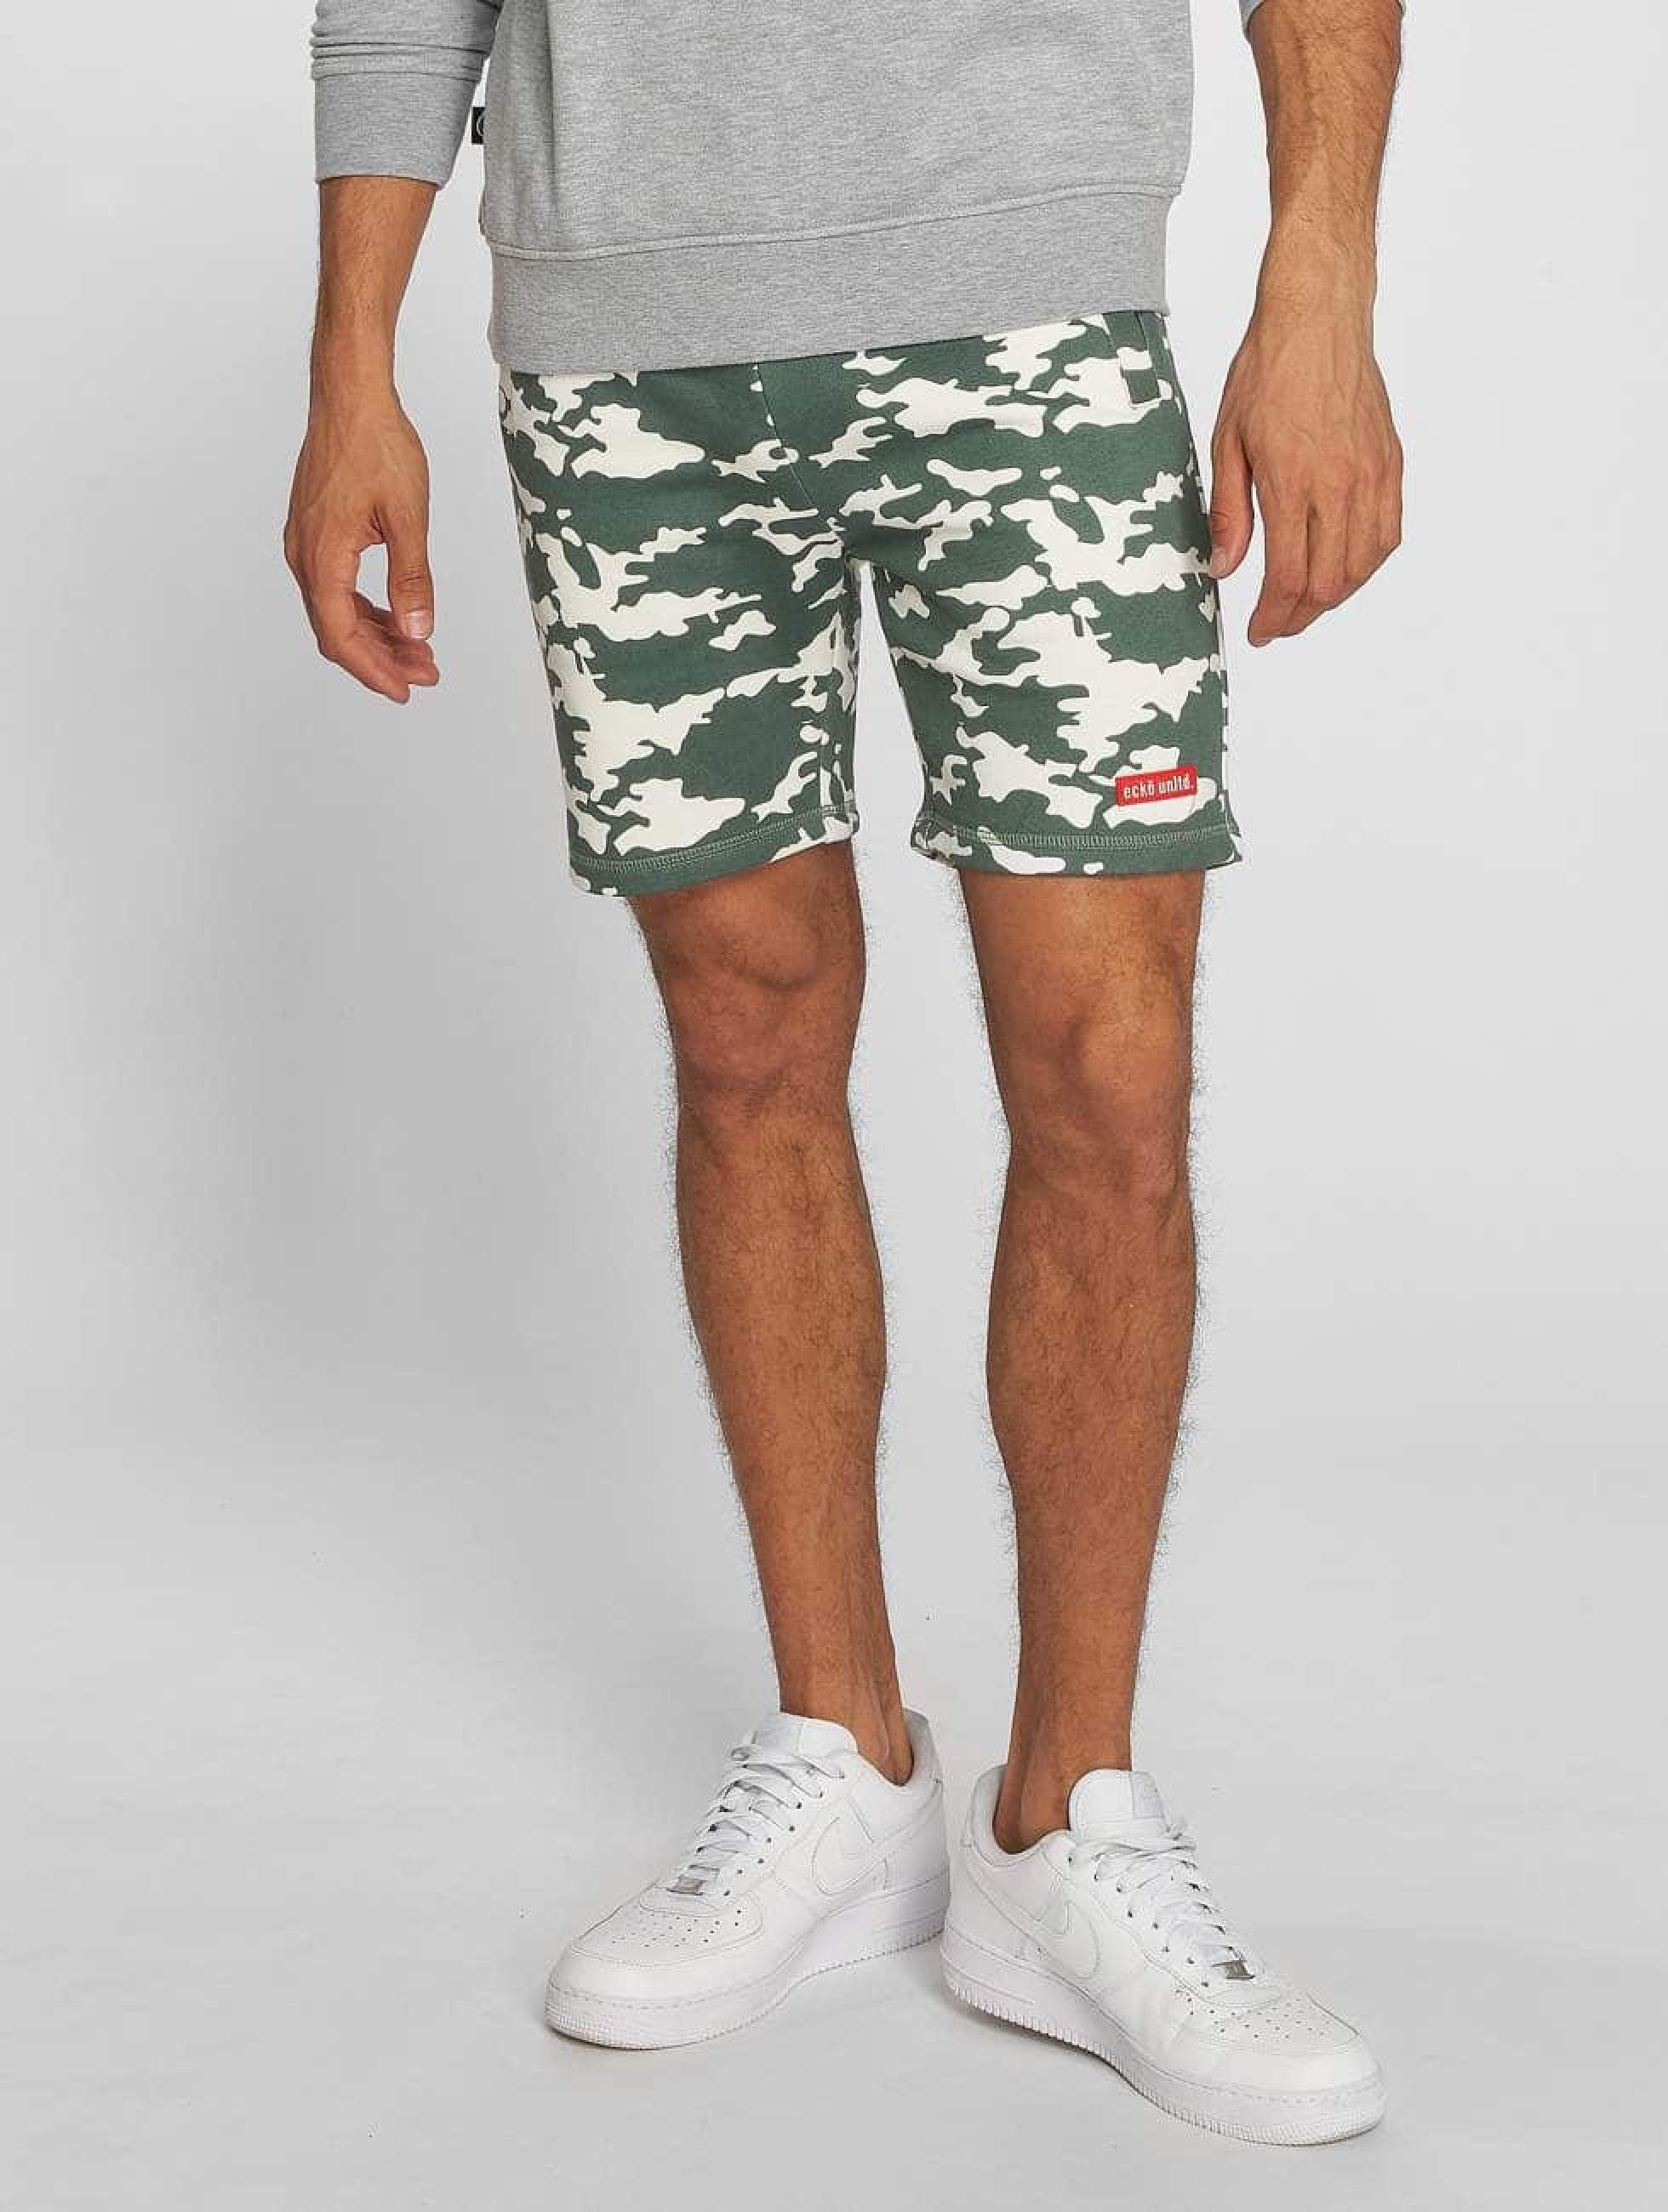 Ecko Unltd. / Short BananaBeach in camouflage 5XL